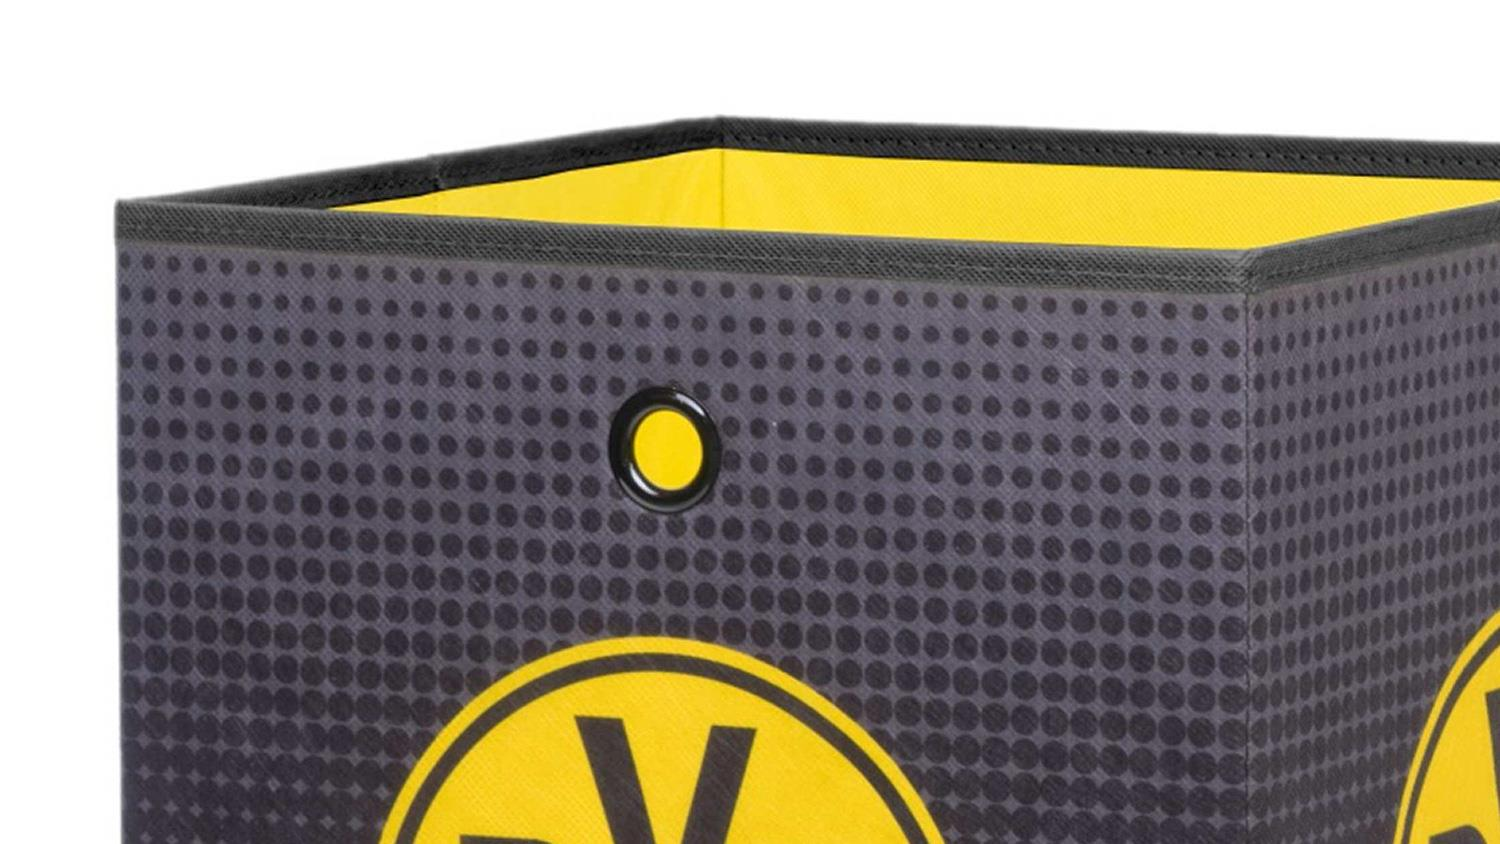 bvb 09 aufbewahrungsbox faltbox borussia dortmund. Black Bedroom Furniture Sets. Home Design Ideas